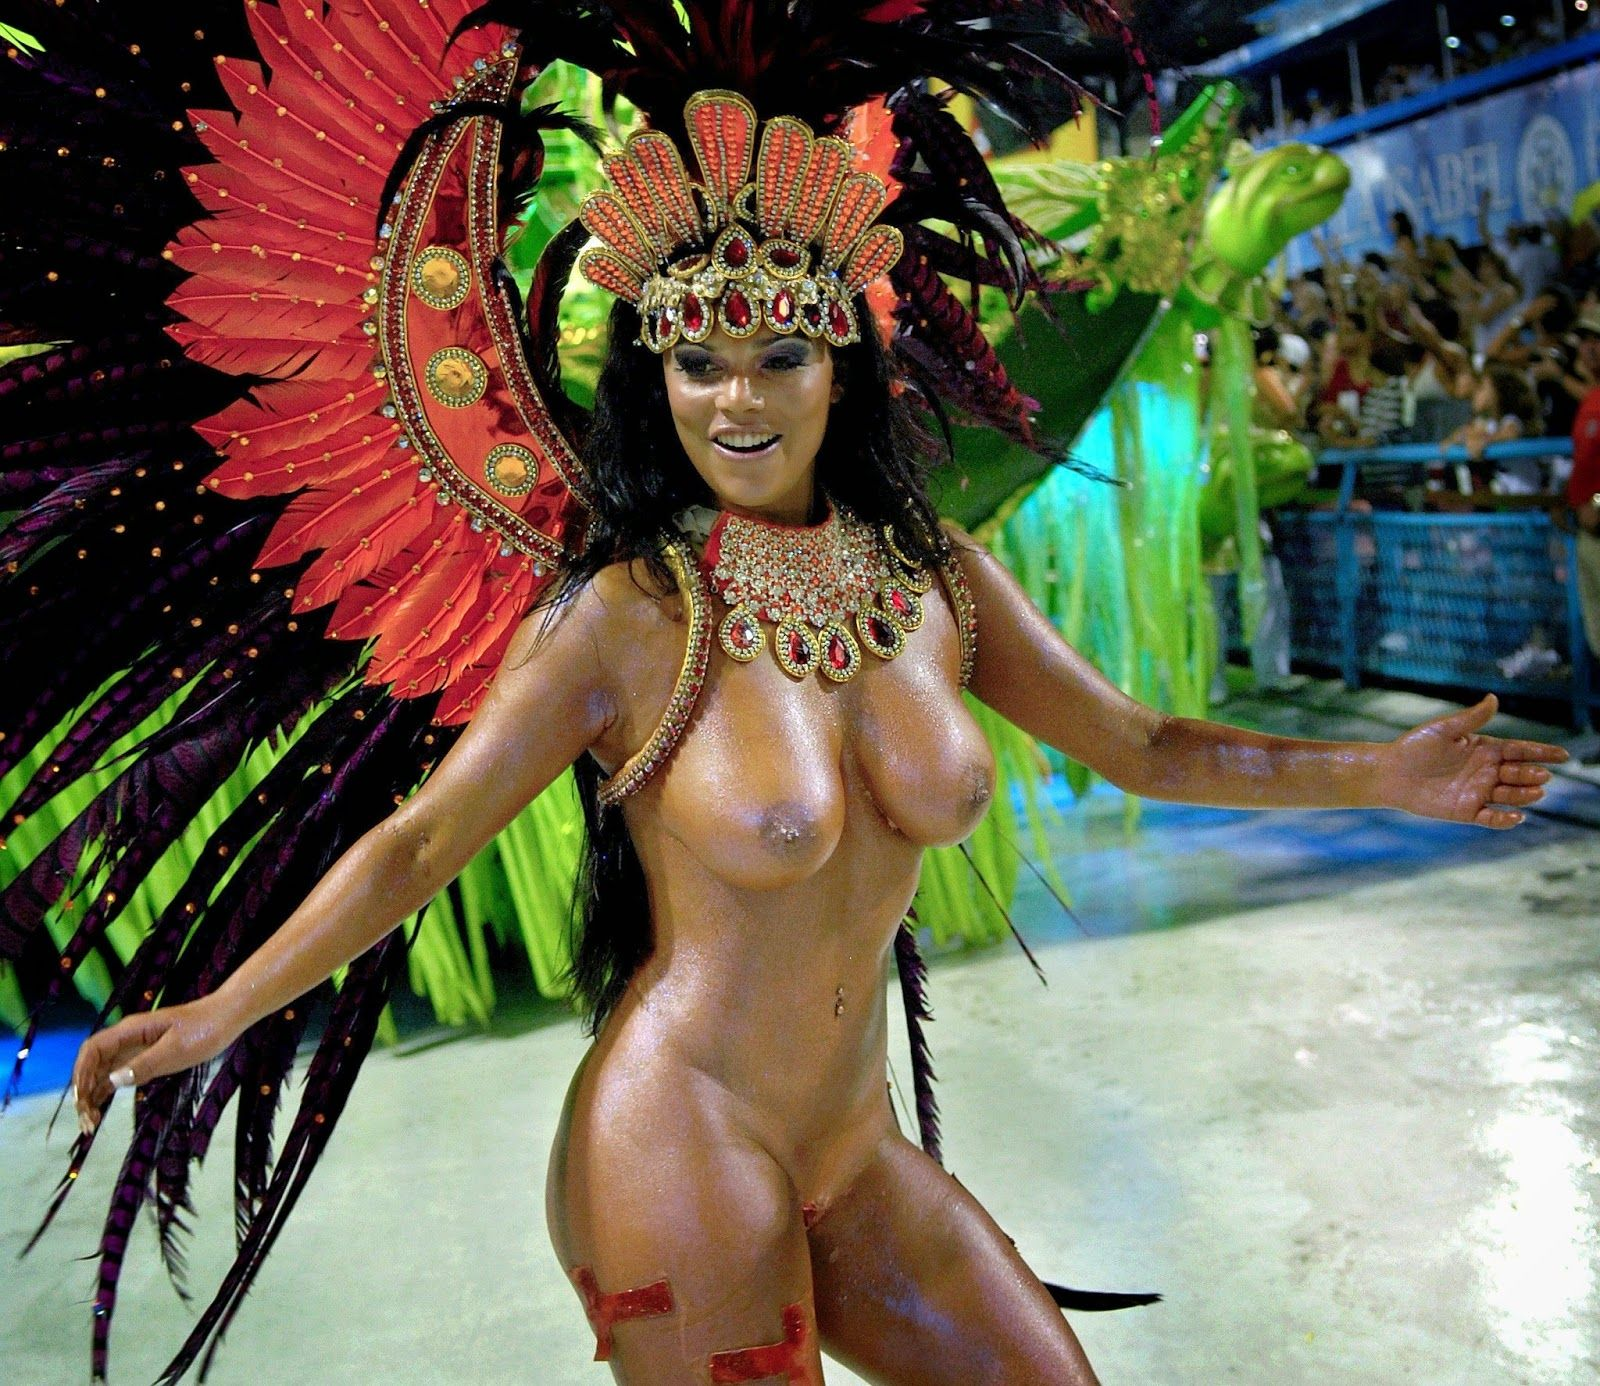 Naked girls of brazil festival hope